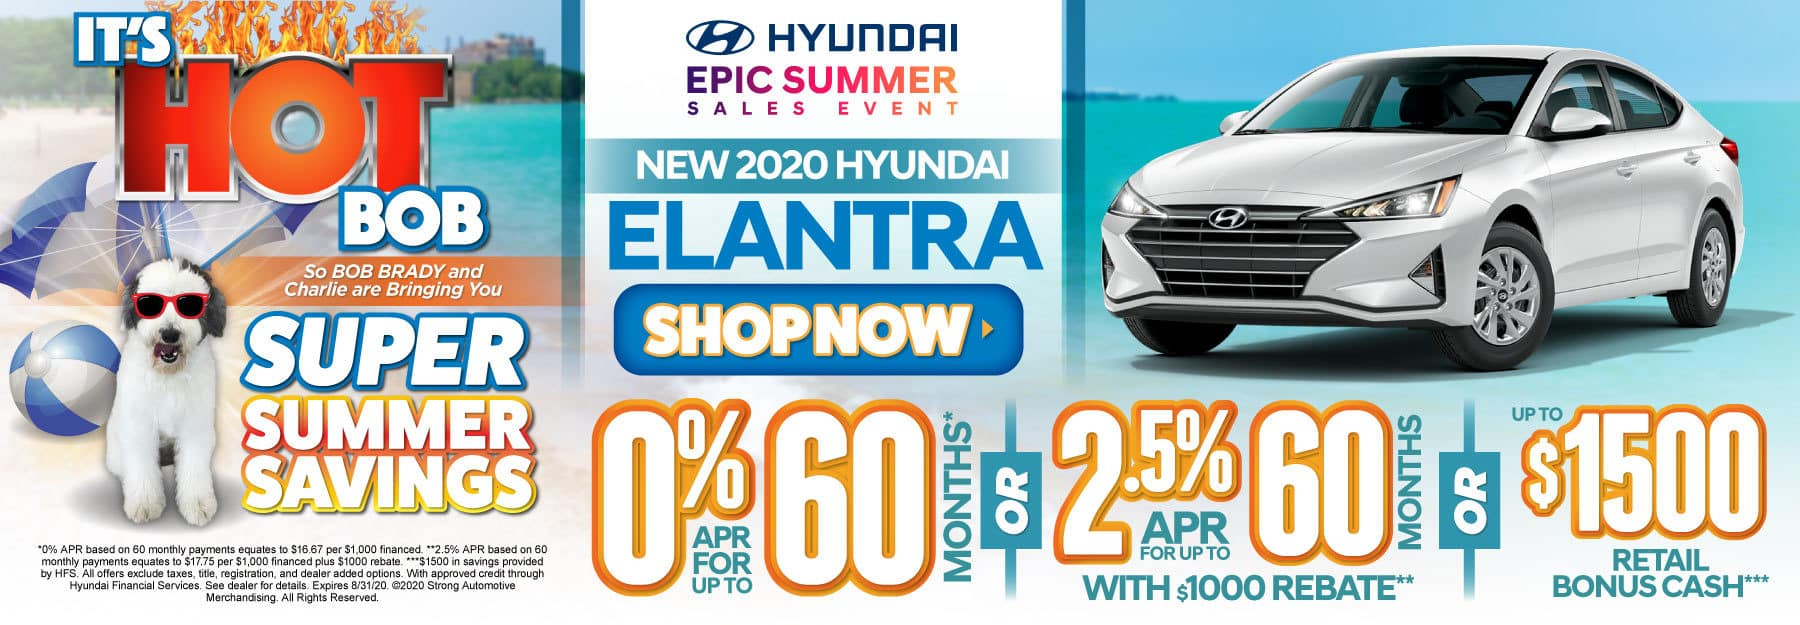 New 2020 Hyundai Elantra - 0% APR for up to 60 months or 2.5% APR for 60 months with $1000 rebate or up to $1500 retail bonus cash - Click to View Inventory